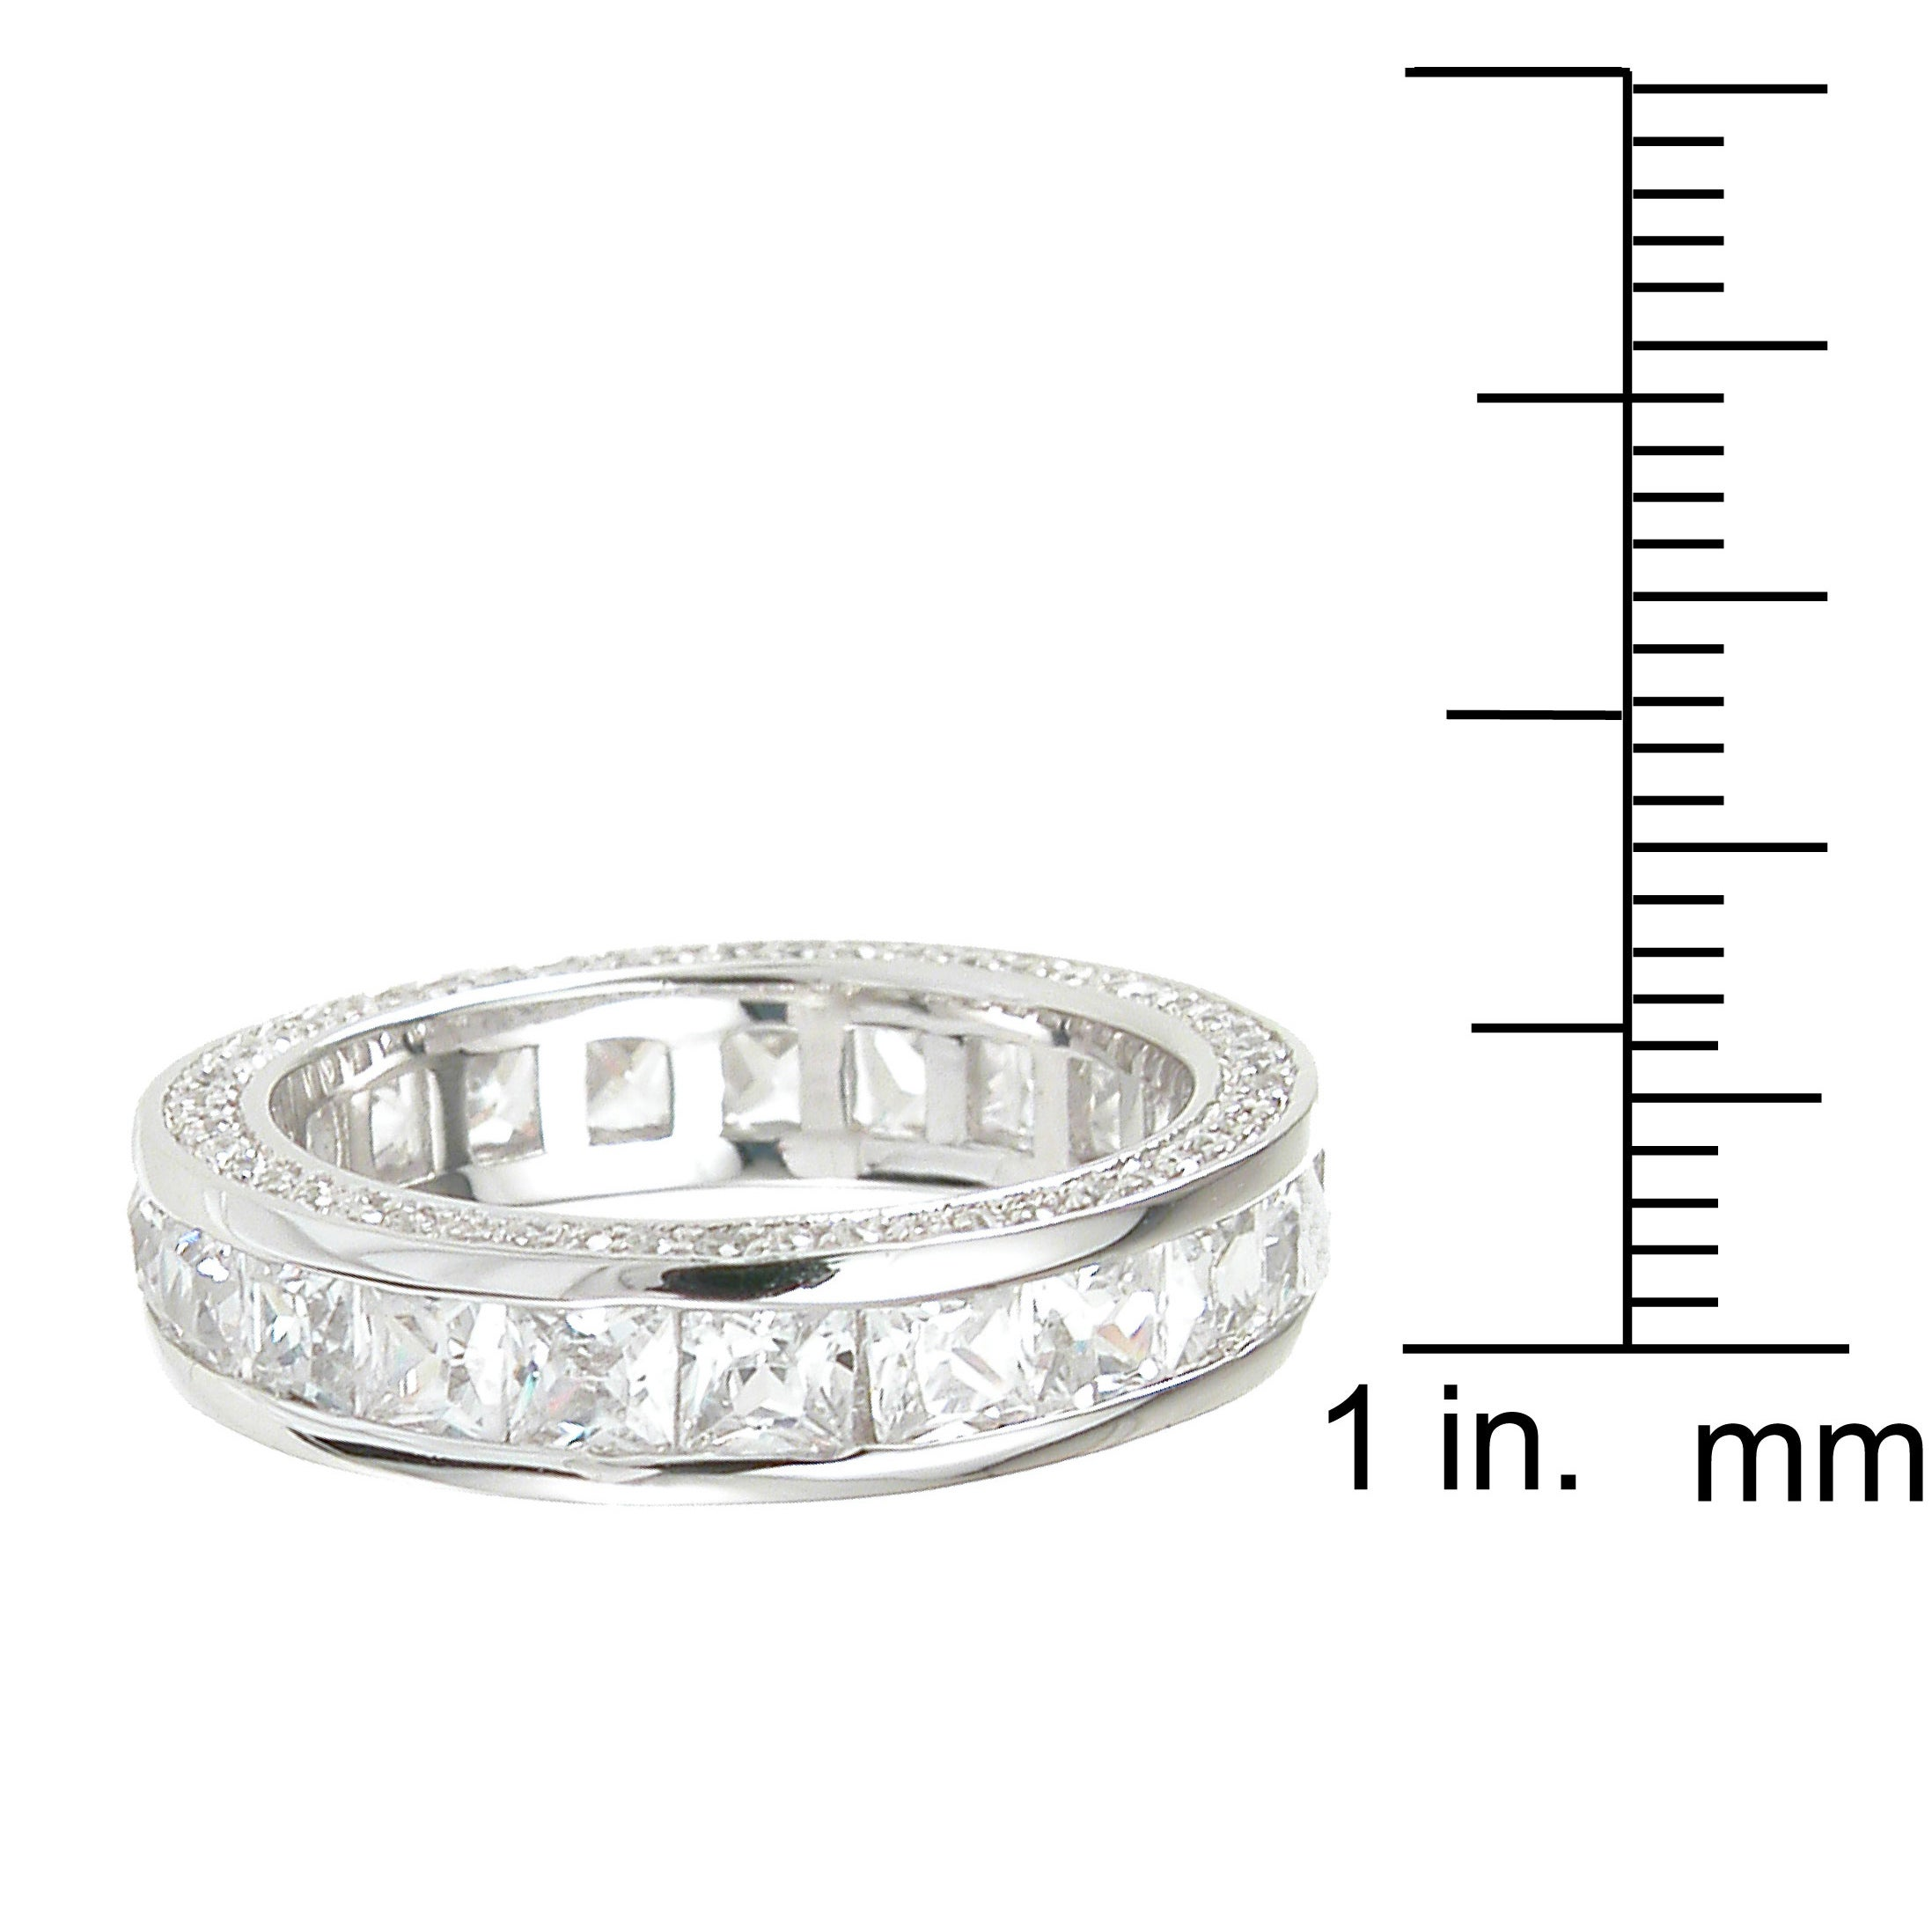 bands to band cz wedding sterling sto stackable view silver ring bling zirconia rings jewelry all eternity stack cubic baguette